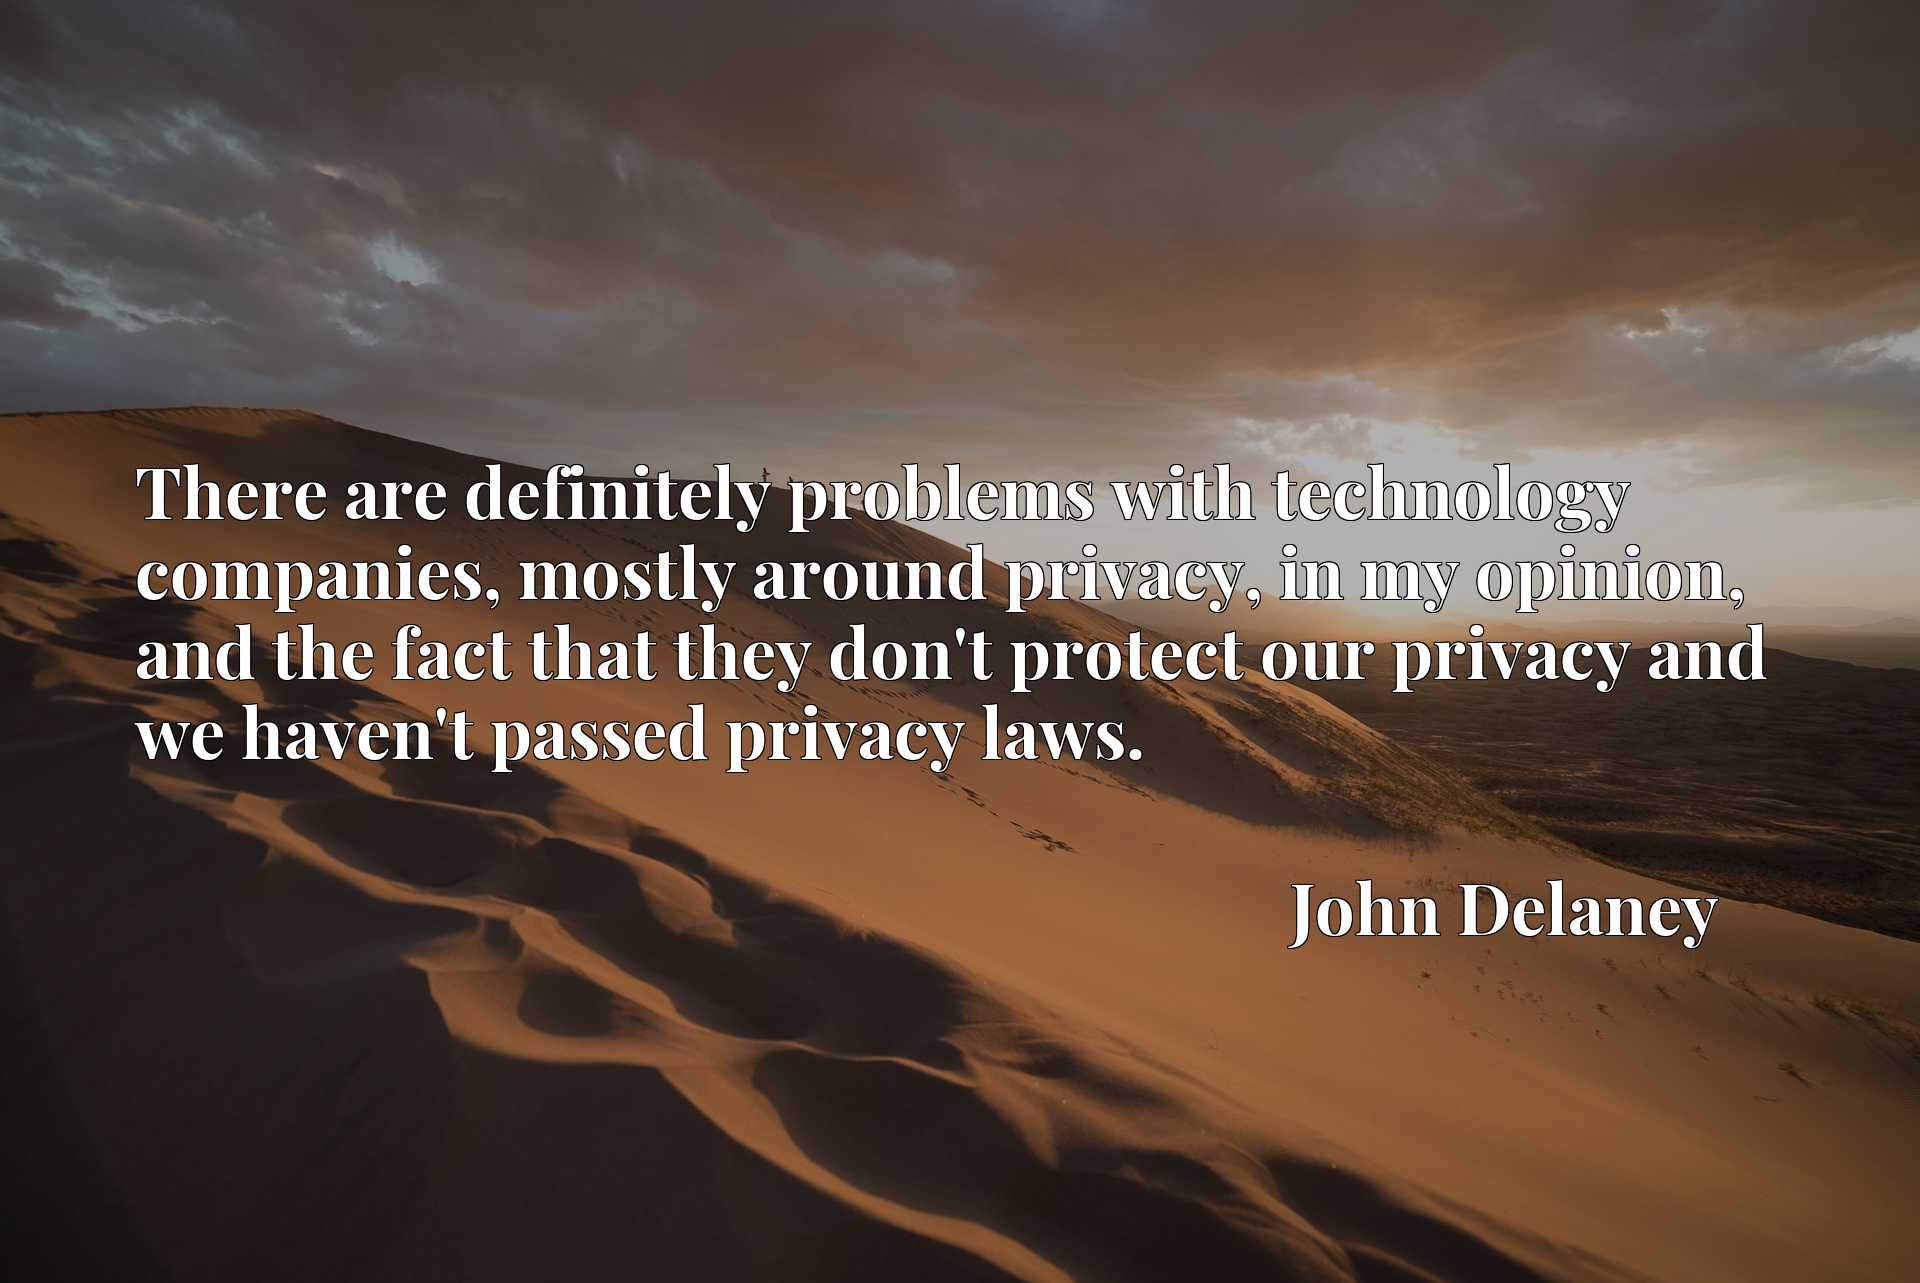 There are definitely problems with technology companies, mostly around privacy, in my opinion, and the fact that they don't protect our privacy and we haven't passed privacy laws.